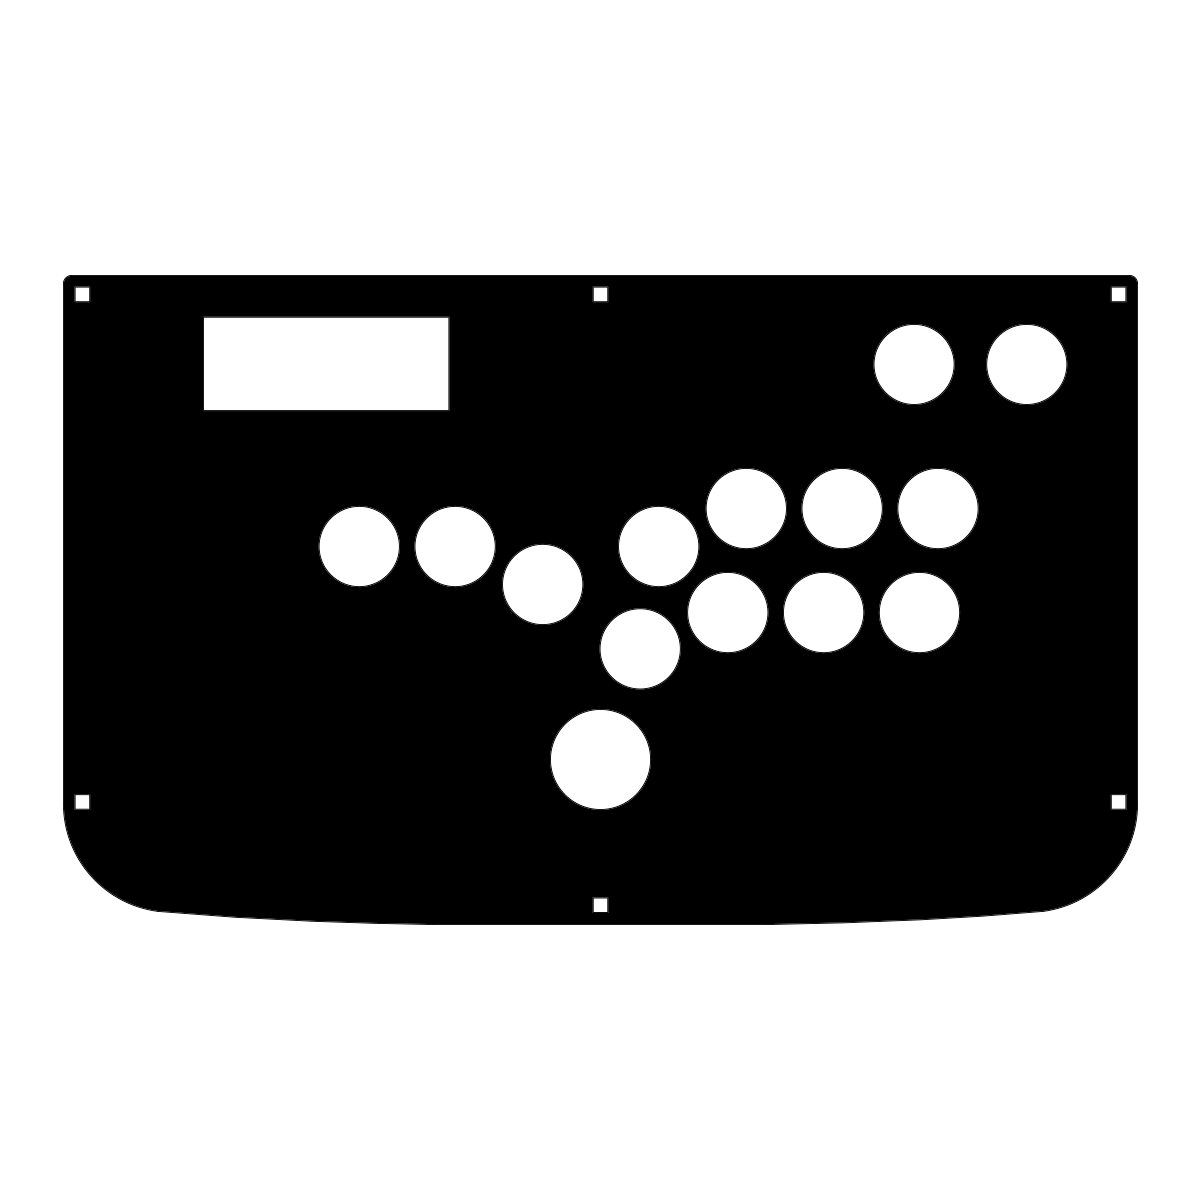 Hori RAP3 Replacement Panel - Hitbox Layout